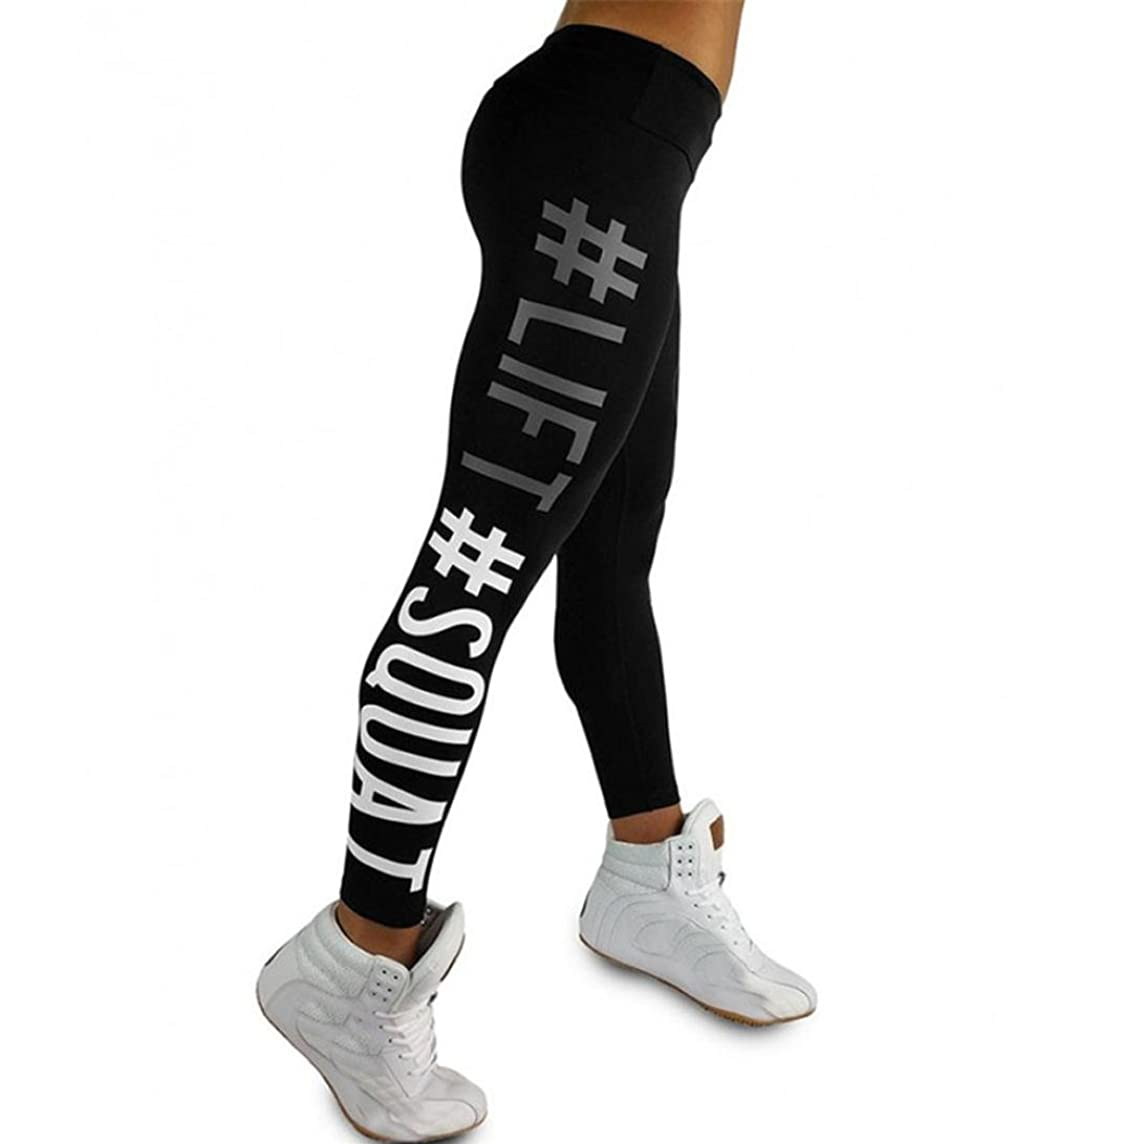 Life Squat Letter Yoga Pants, Women's Fashion Workout Leggings Fitness Sports Gym Running Yoga Athletic Pants by E-Scenery